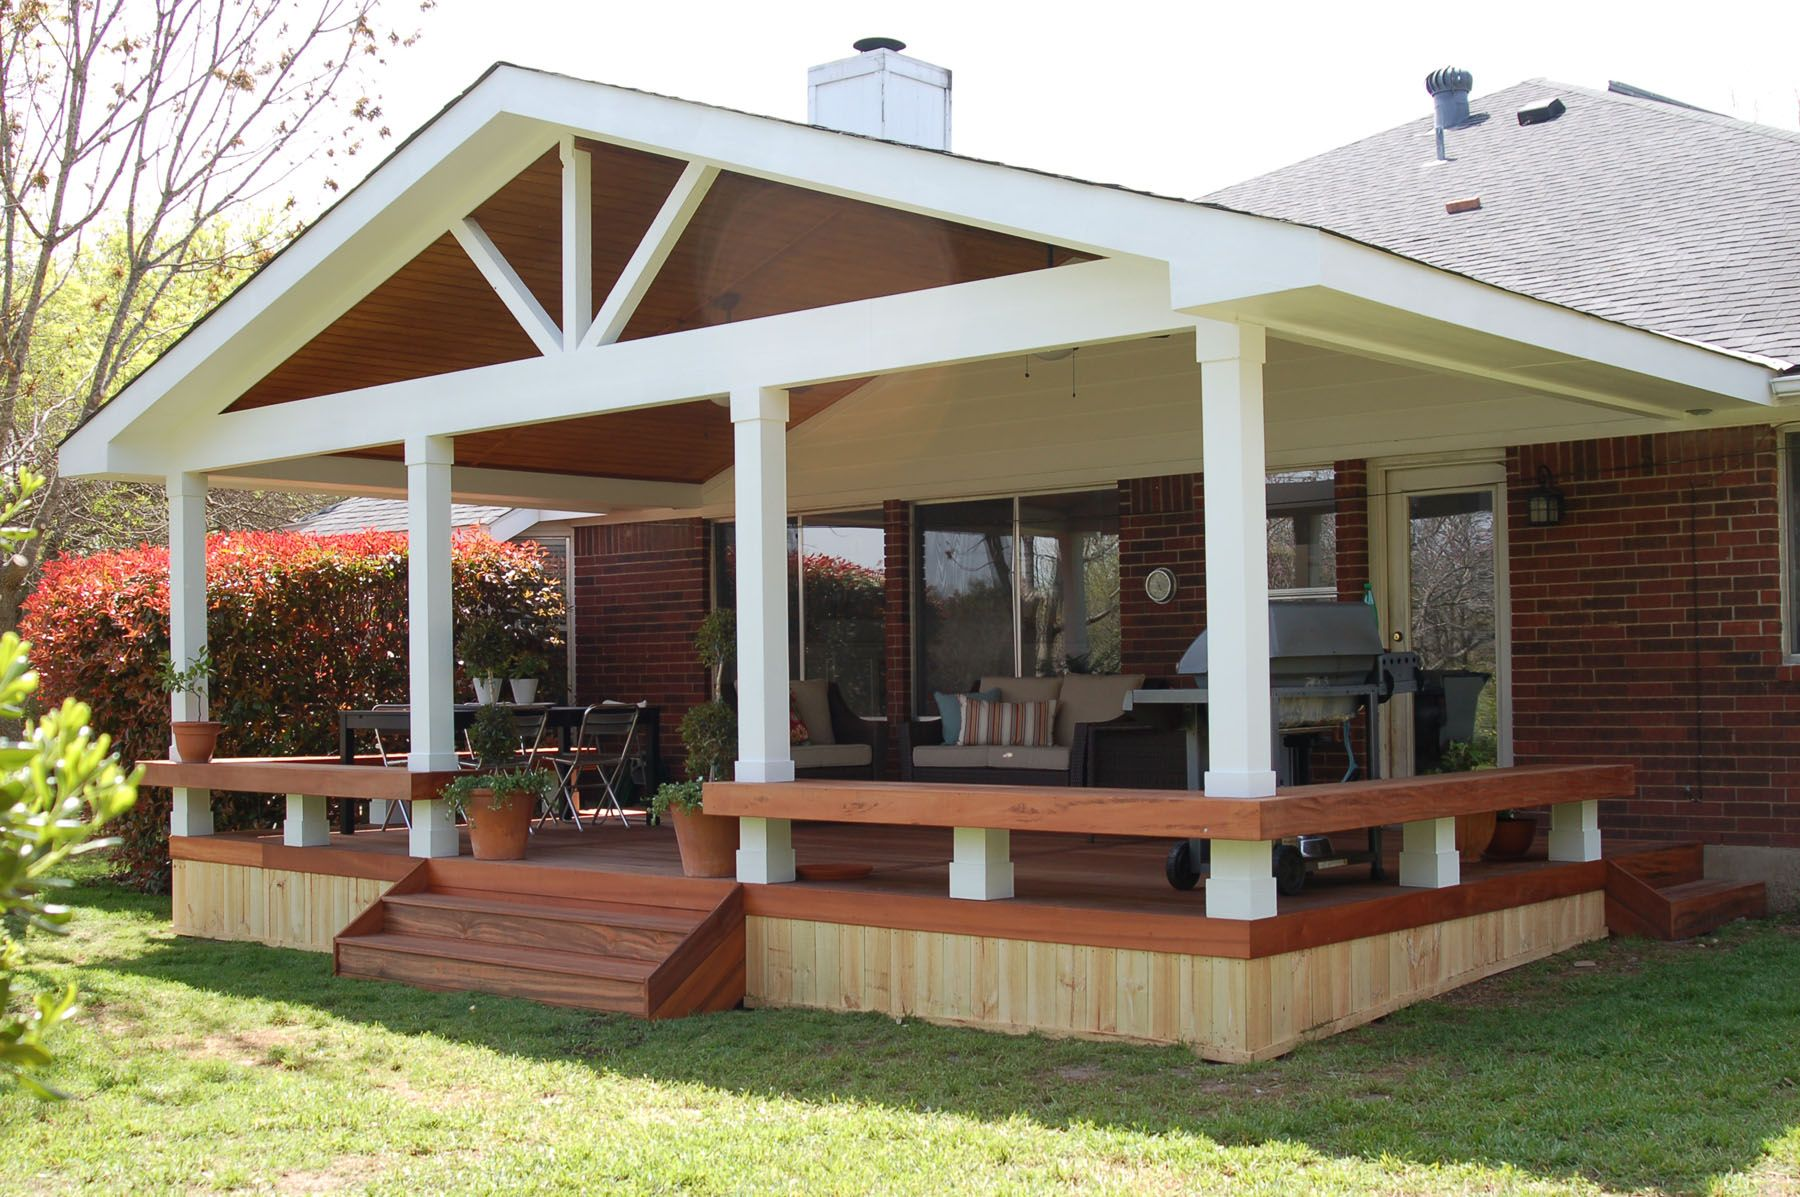 Captivating Austin Deck   Tigerwood Deck With IPE Deck Cover